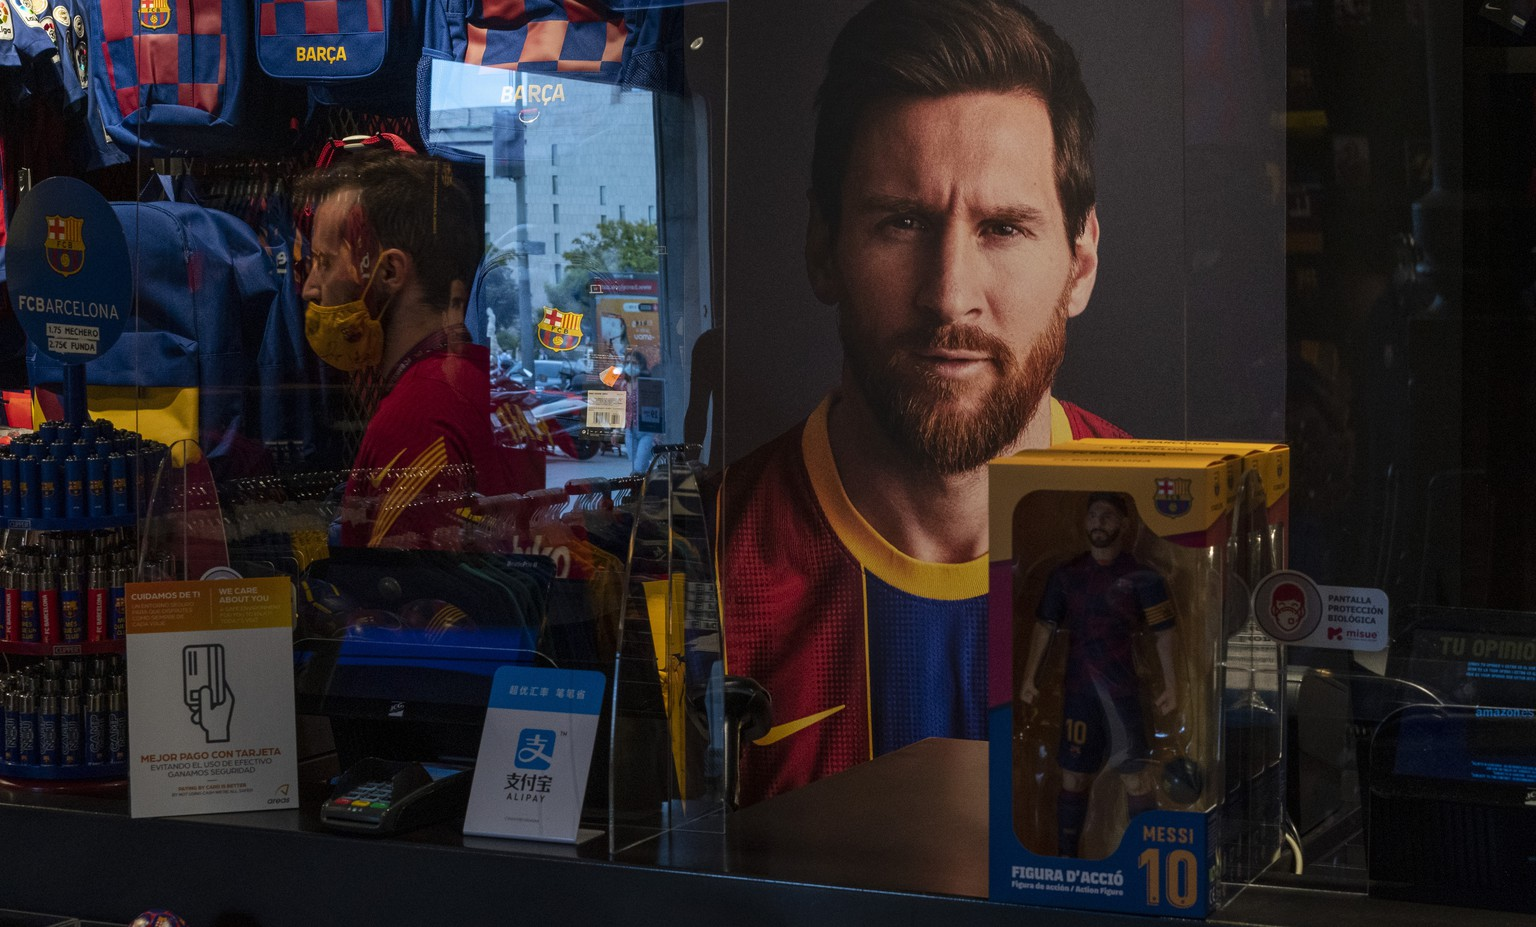 A poster with the face of Barcelona soccer player Lionel Messi is displayed at a F.C. Barcelona store in Barcelona, Spain on Tuesday, Sept. 1, 2020. Barcelona is banking on a face-to-face meeting with Lionel Messi to try to convince him to stay. Talks with Messi